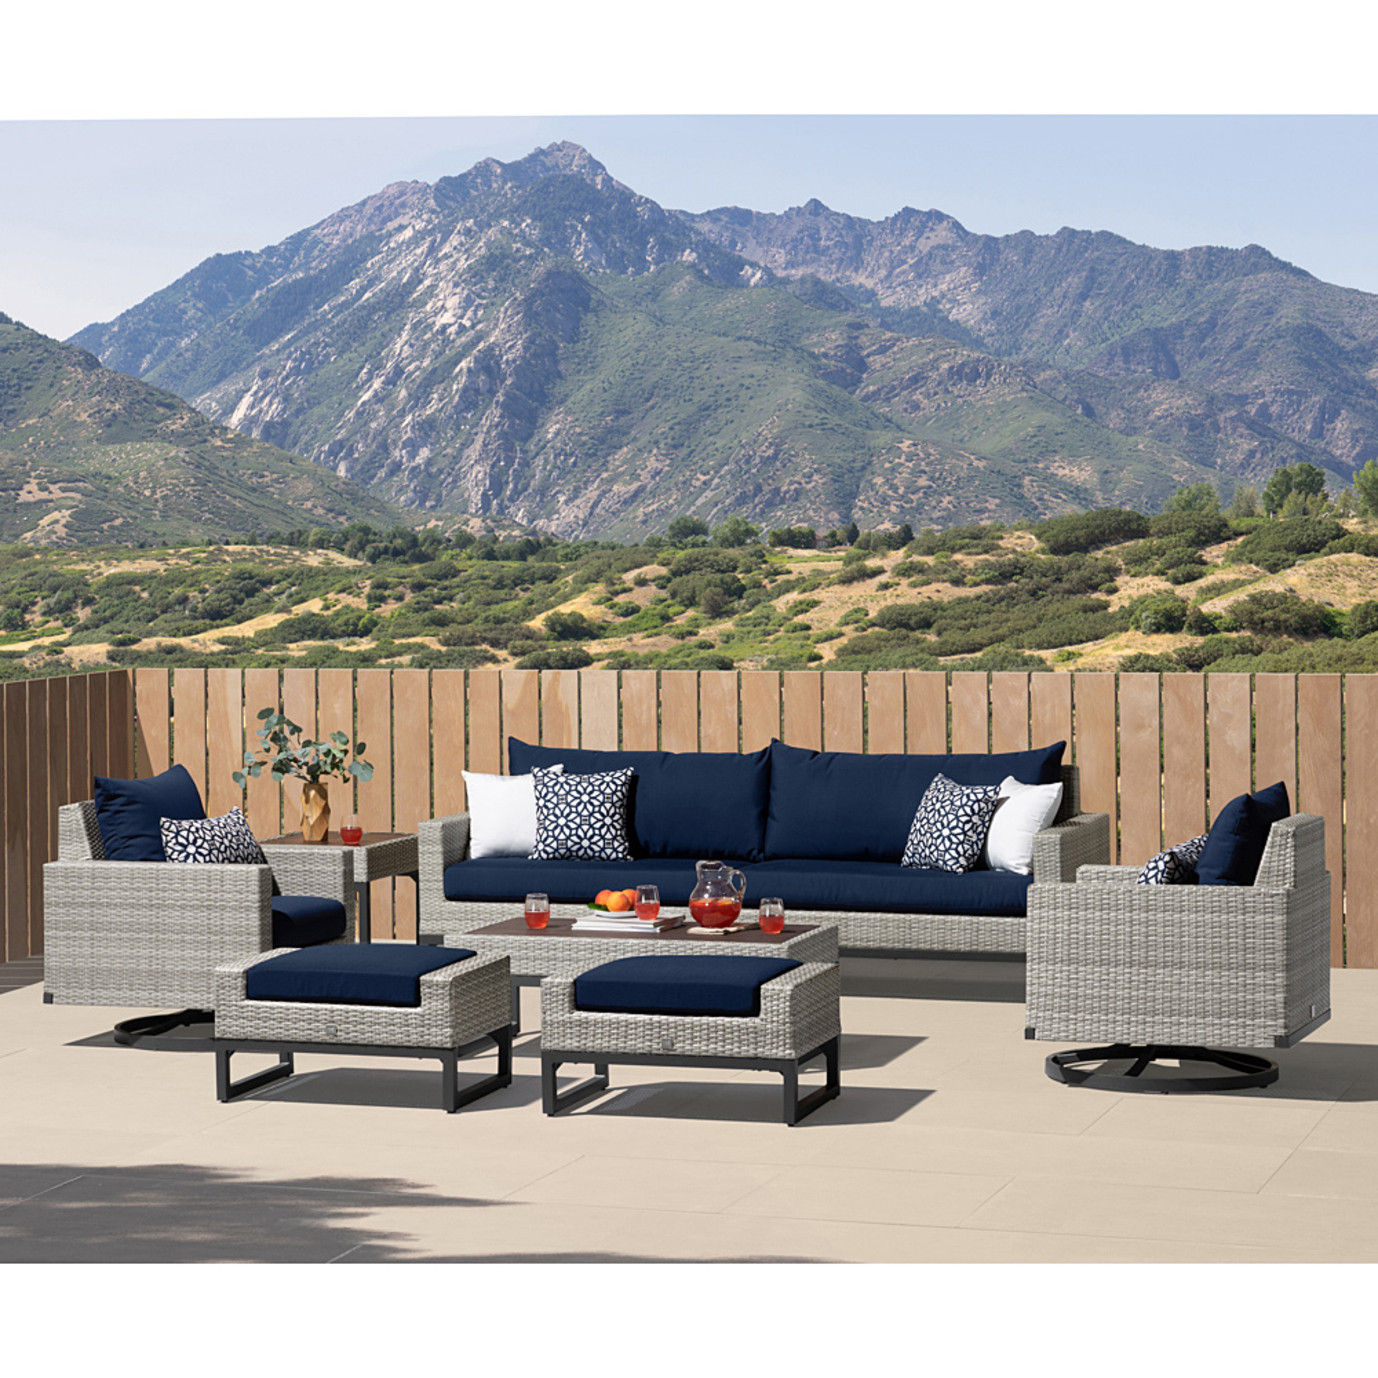 Milo Gray 8 Piece Motion Seating Set - Navy Blue